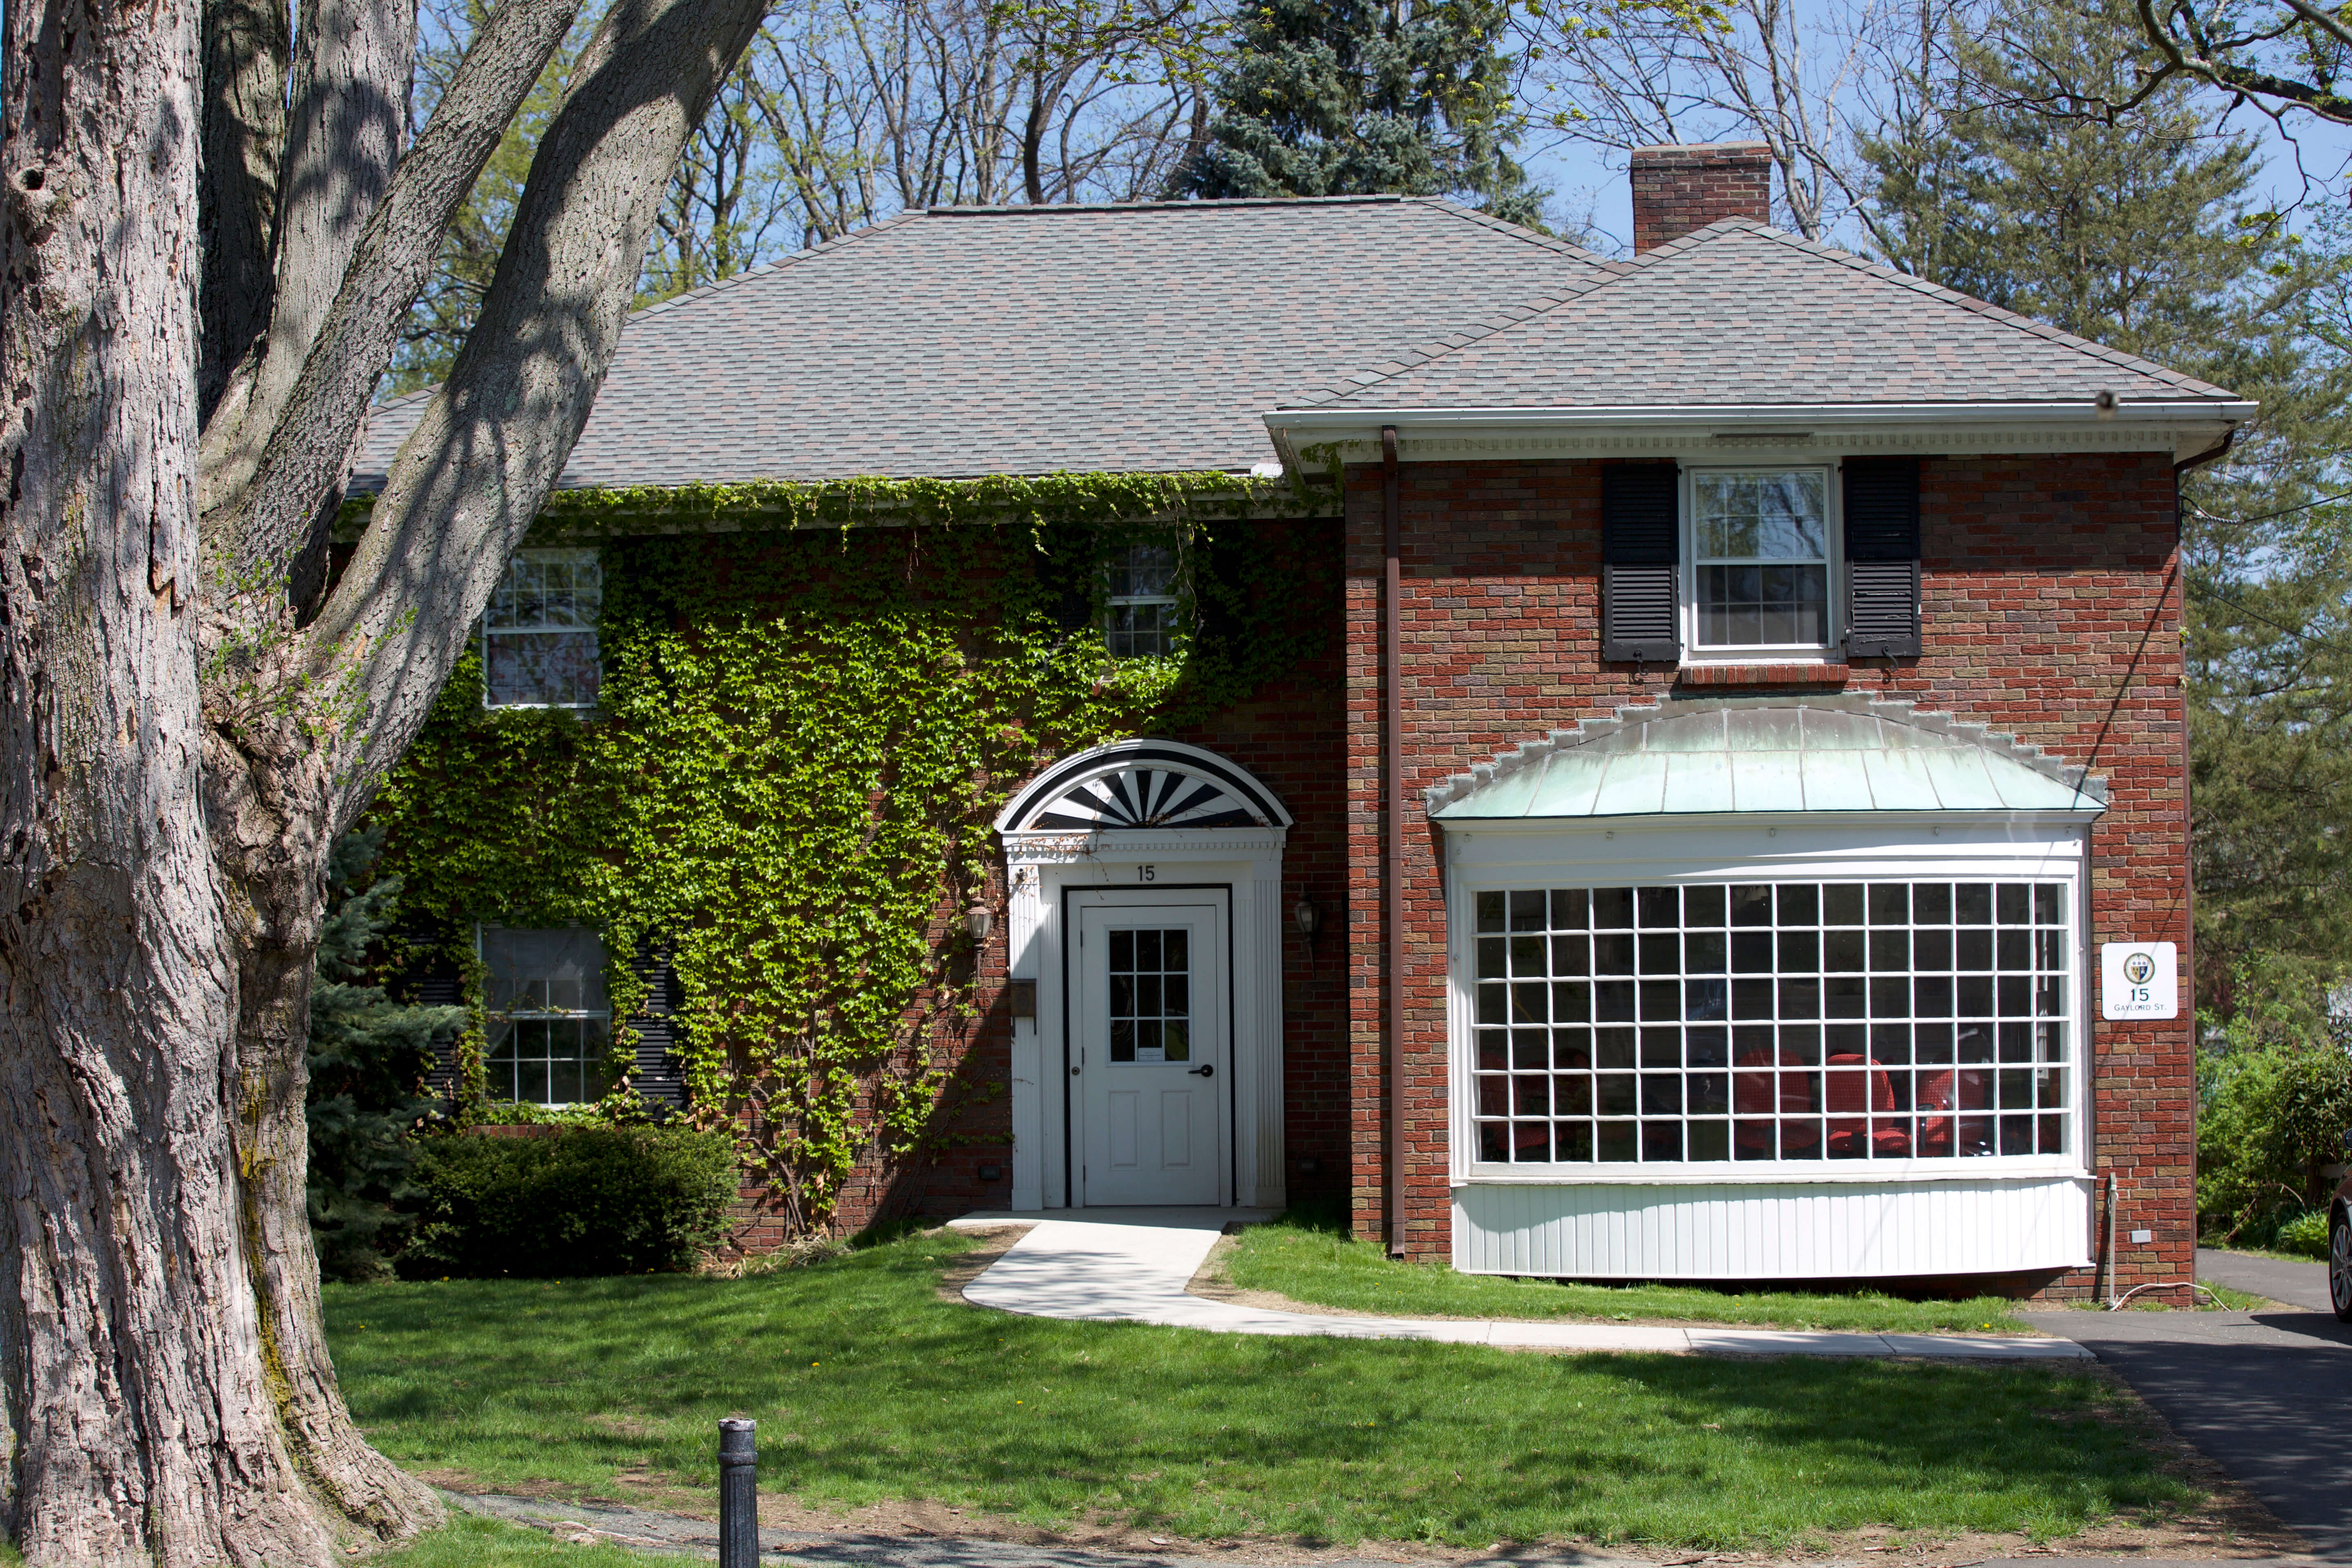 Photo of the Brick House